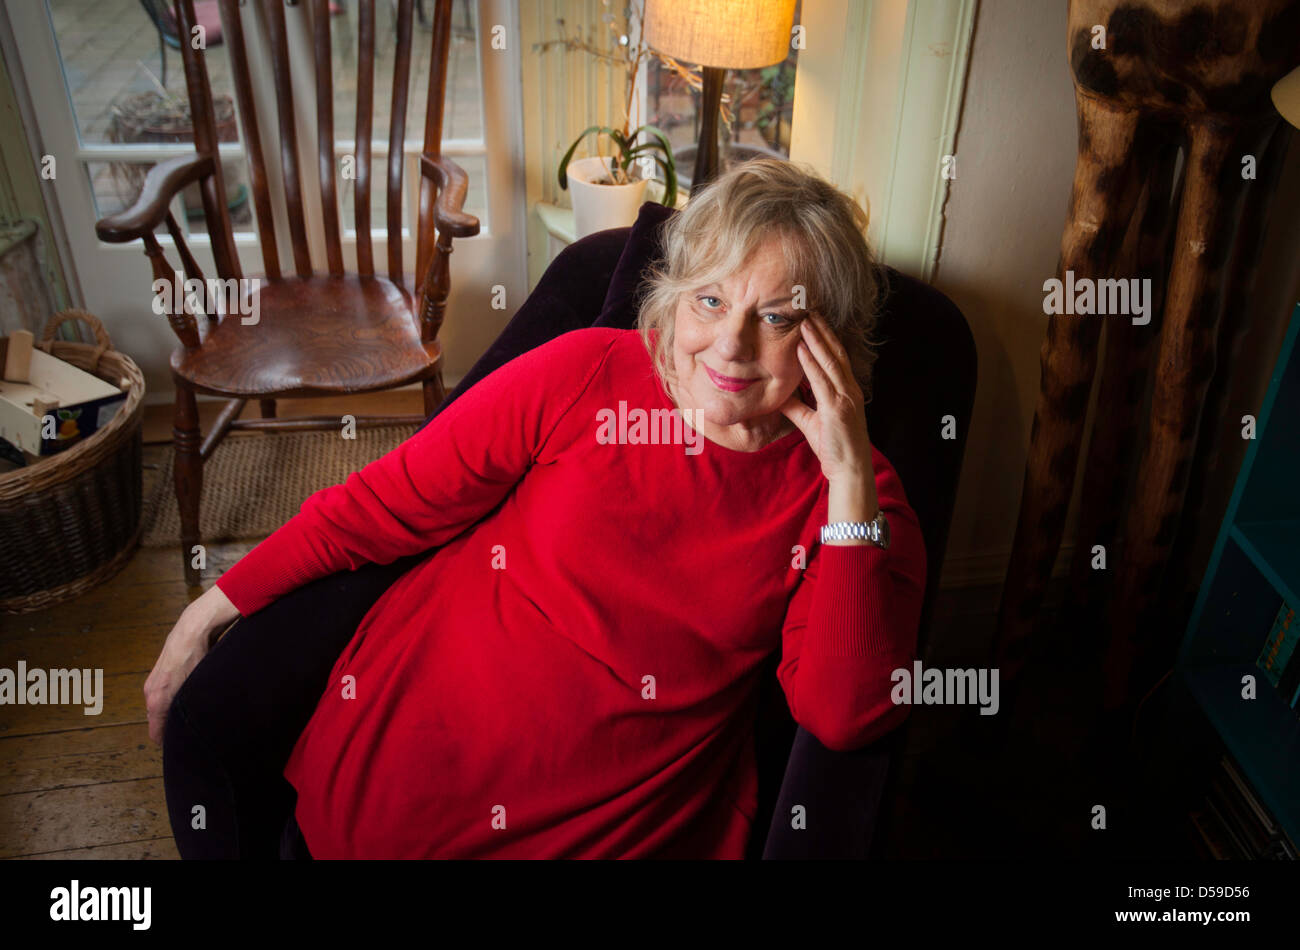 Author Sue Townsend at her home in Leicester, UK - Stock Image